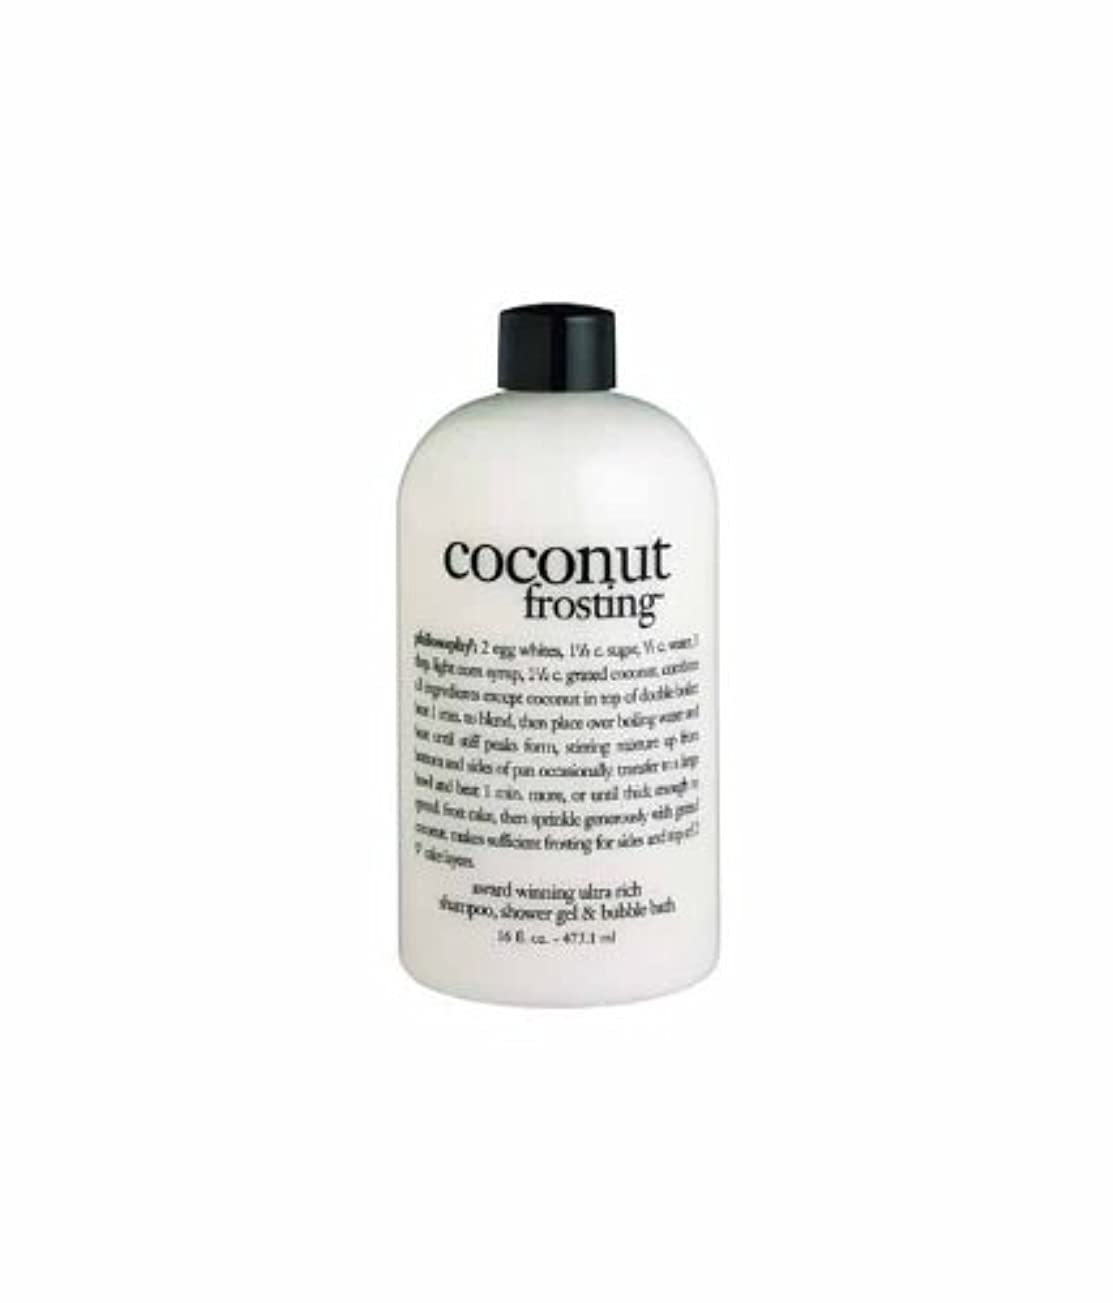 ソフトウェア速報孤独by Coconut Frosting - Shampoo, Shower Gel & Bubble Bath--480ml/16oz by Philosophy